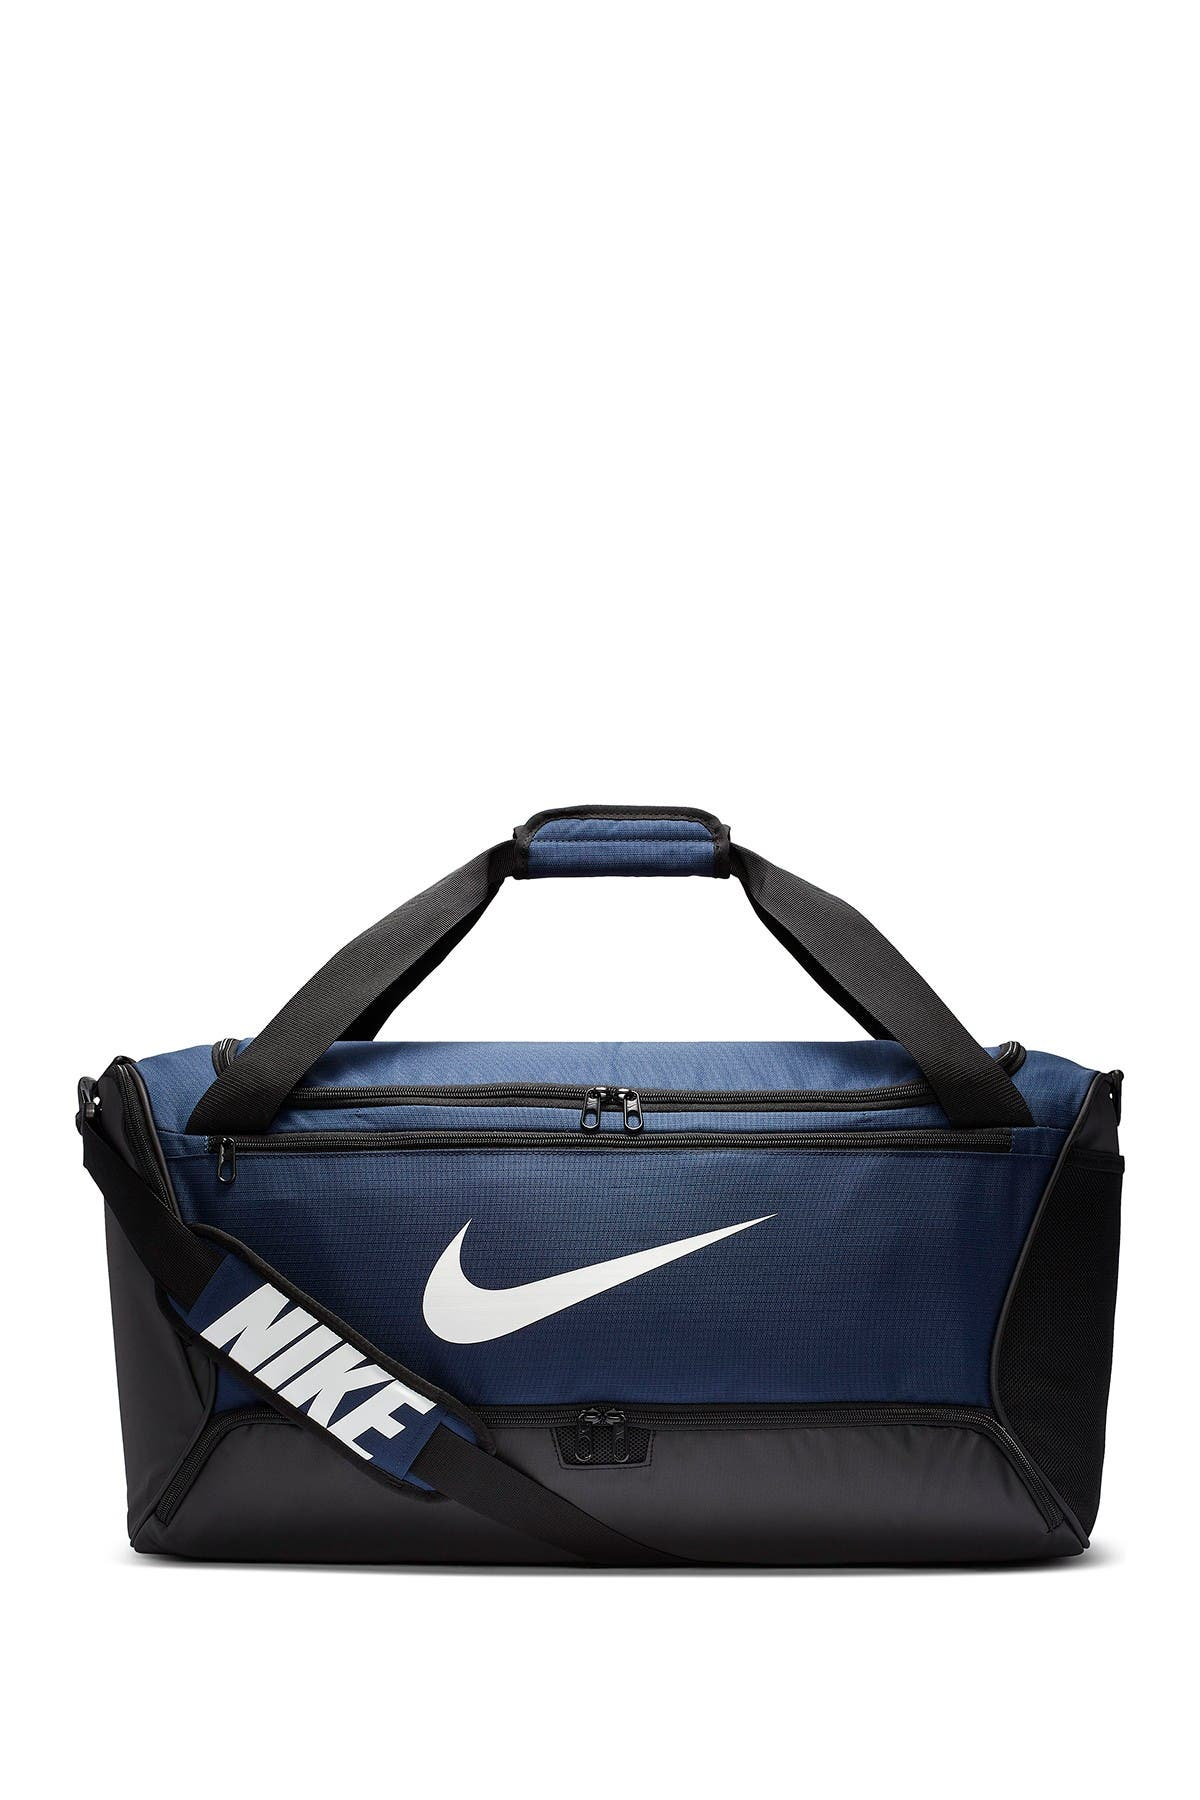 Image of Nike Brasilia Medium Duffel Bag